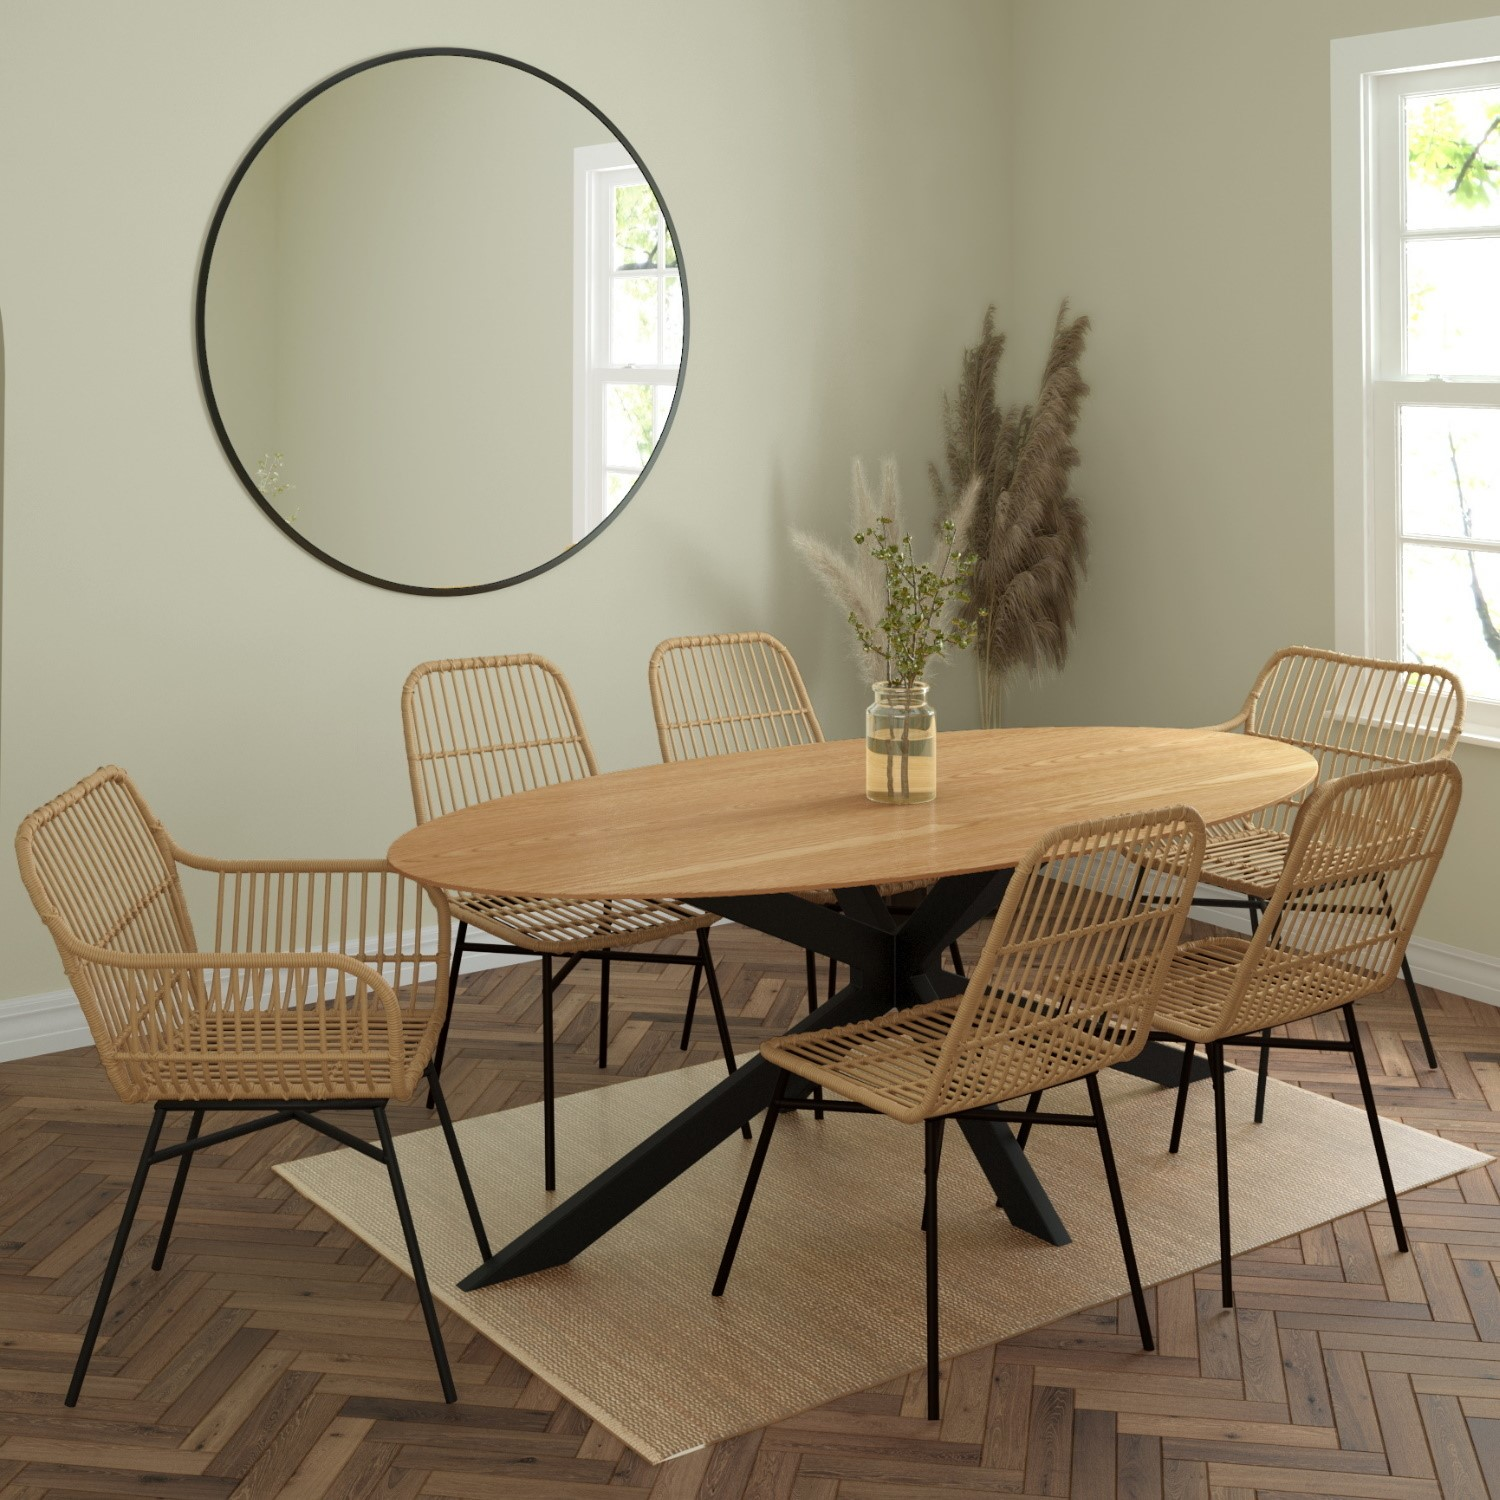 Carson oak oval dining table with 9 rattan dining chairs £9.9 ...